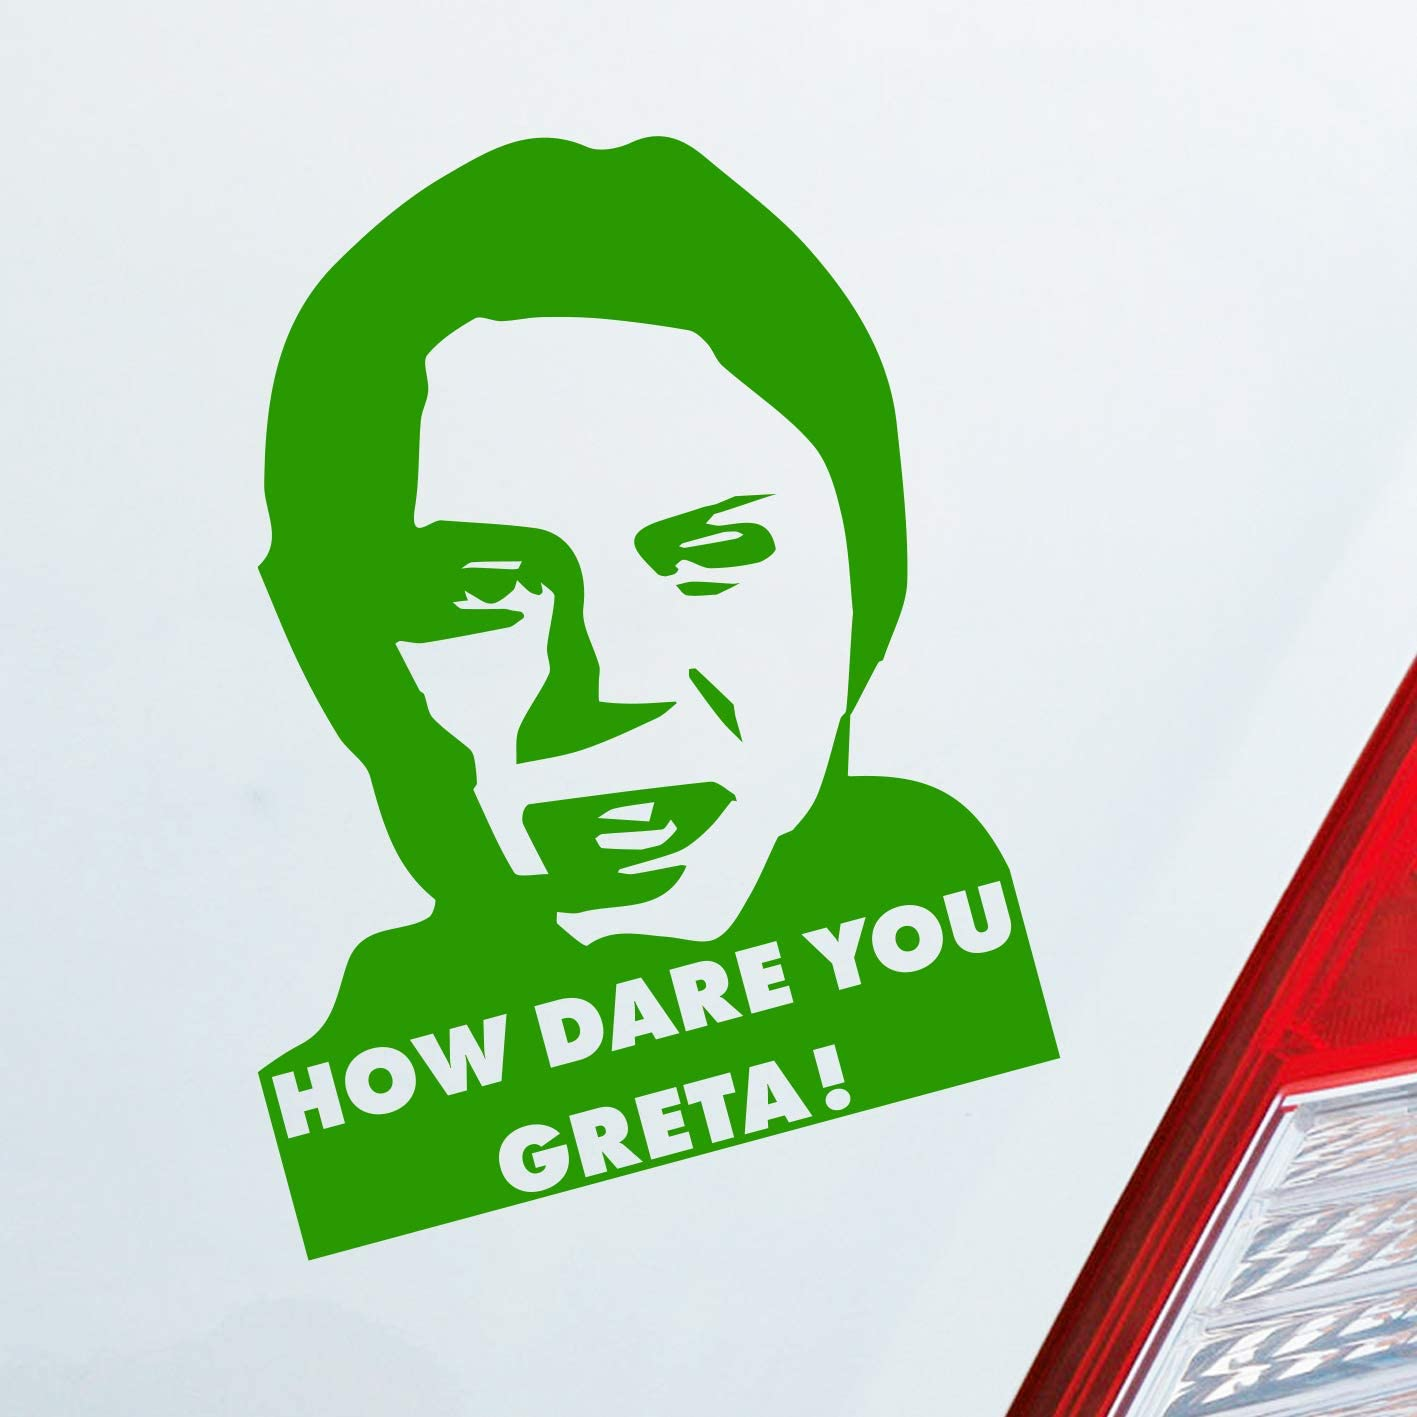 7 x 10 cm car sticker Car Sticker in Your Choice of Colour How Dare You Greta How can you dare Fridays approx